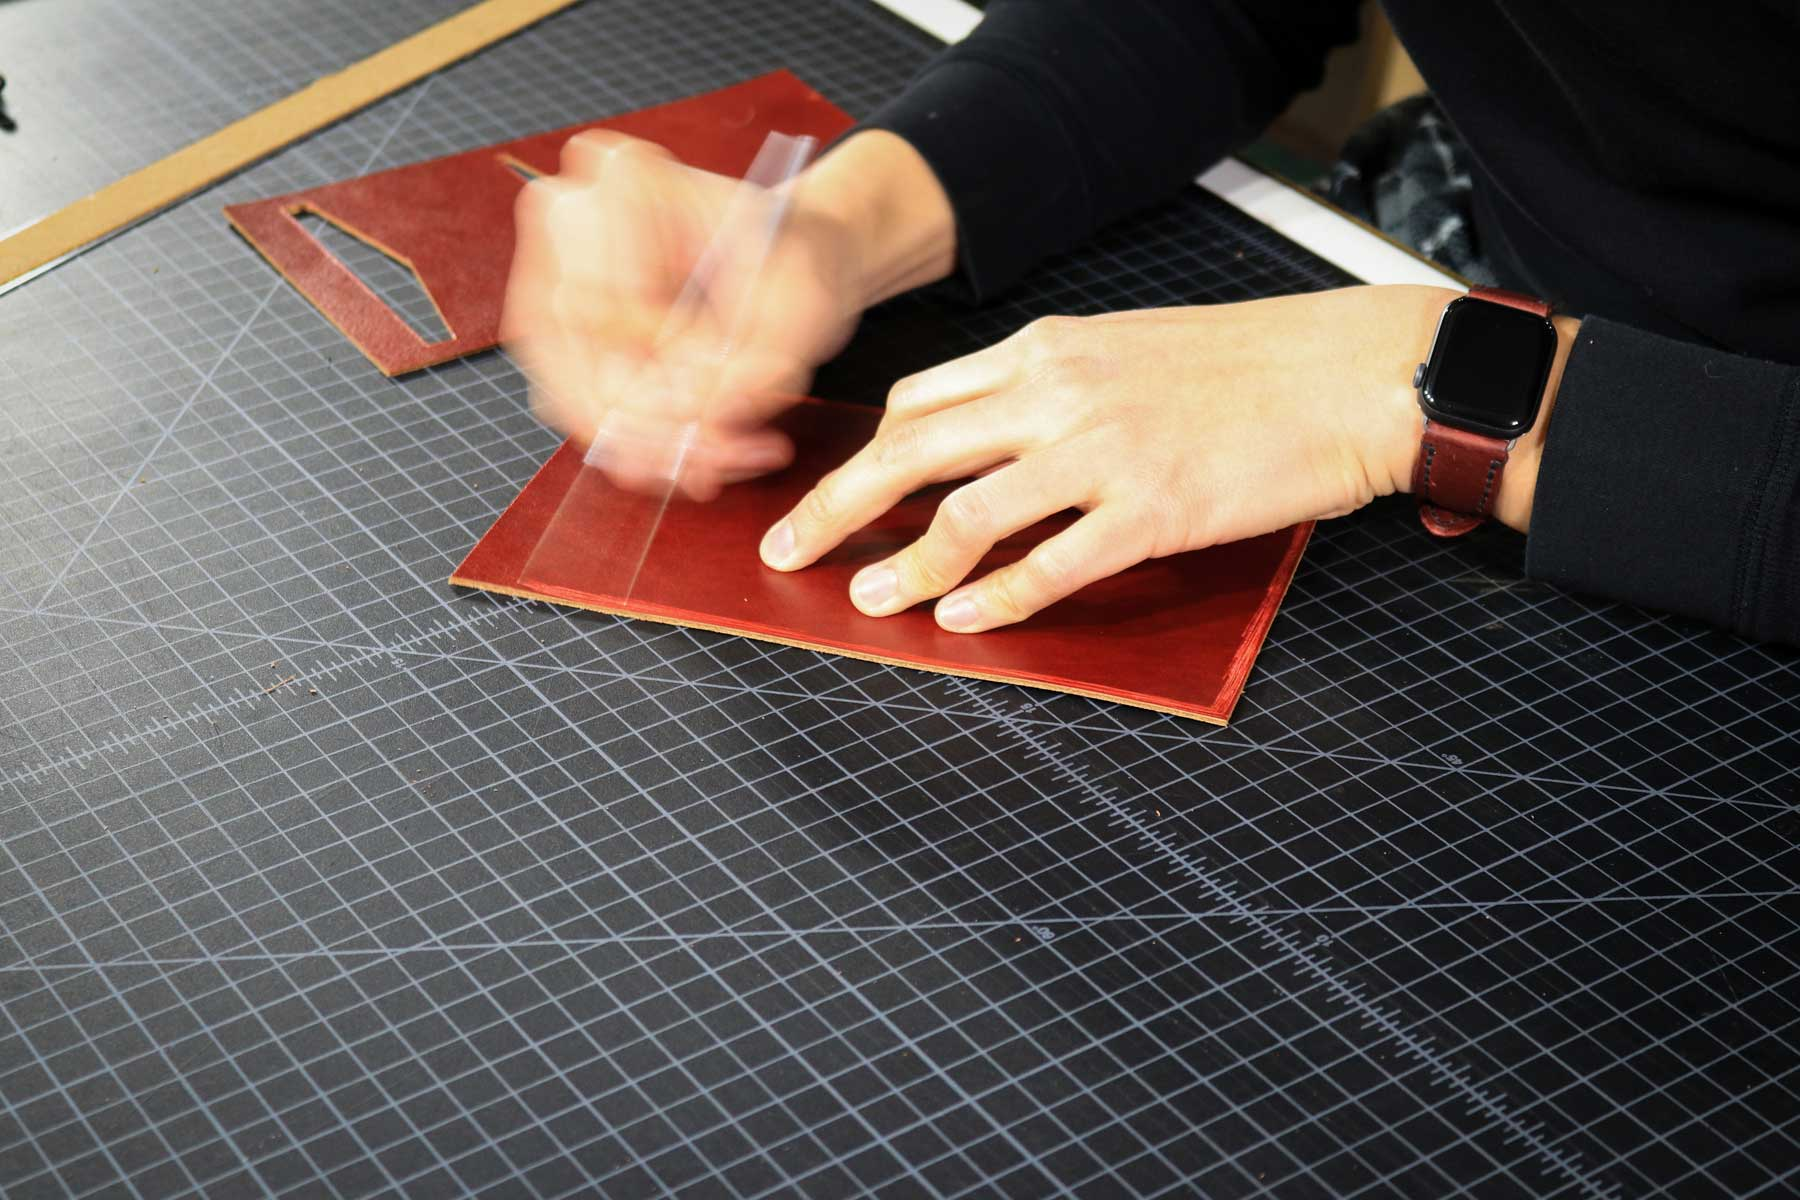 Scratching perimeter of leather